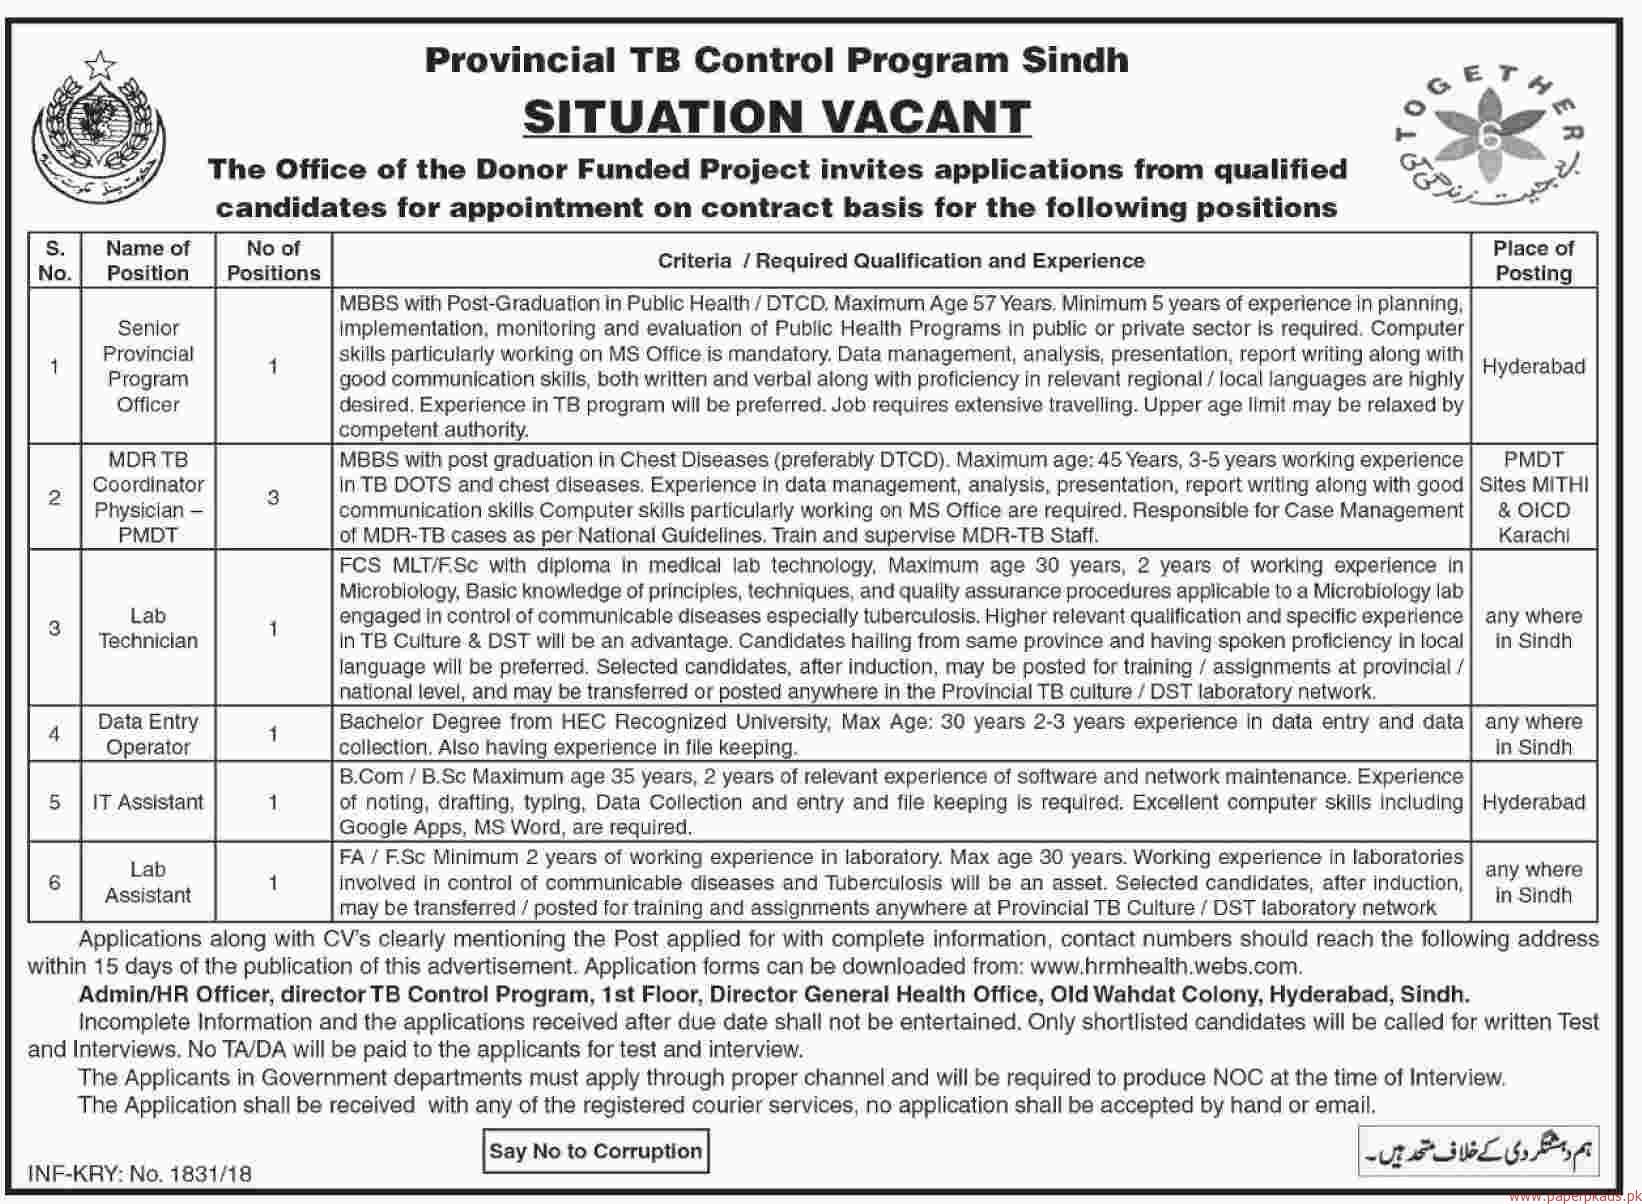 Provincial TB Control Program Sindh Jobs 2018 Latest